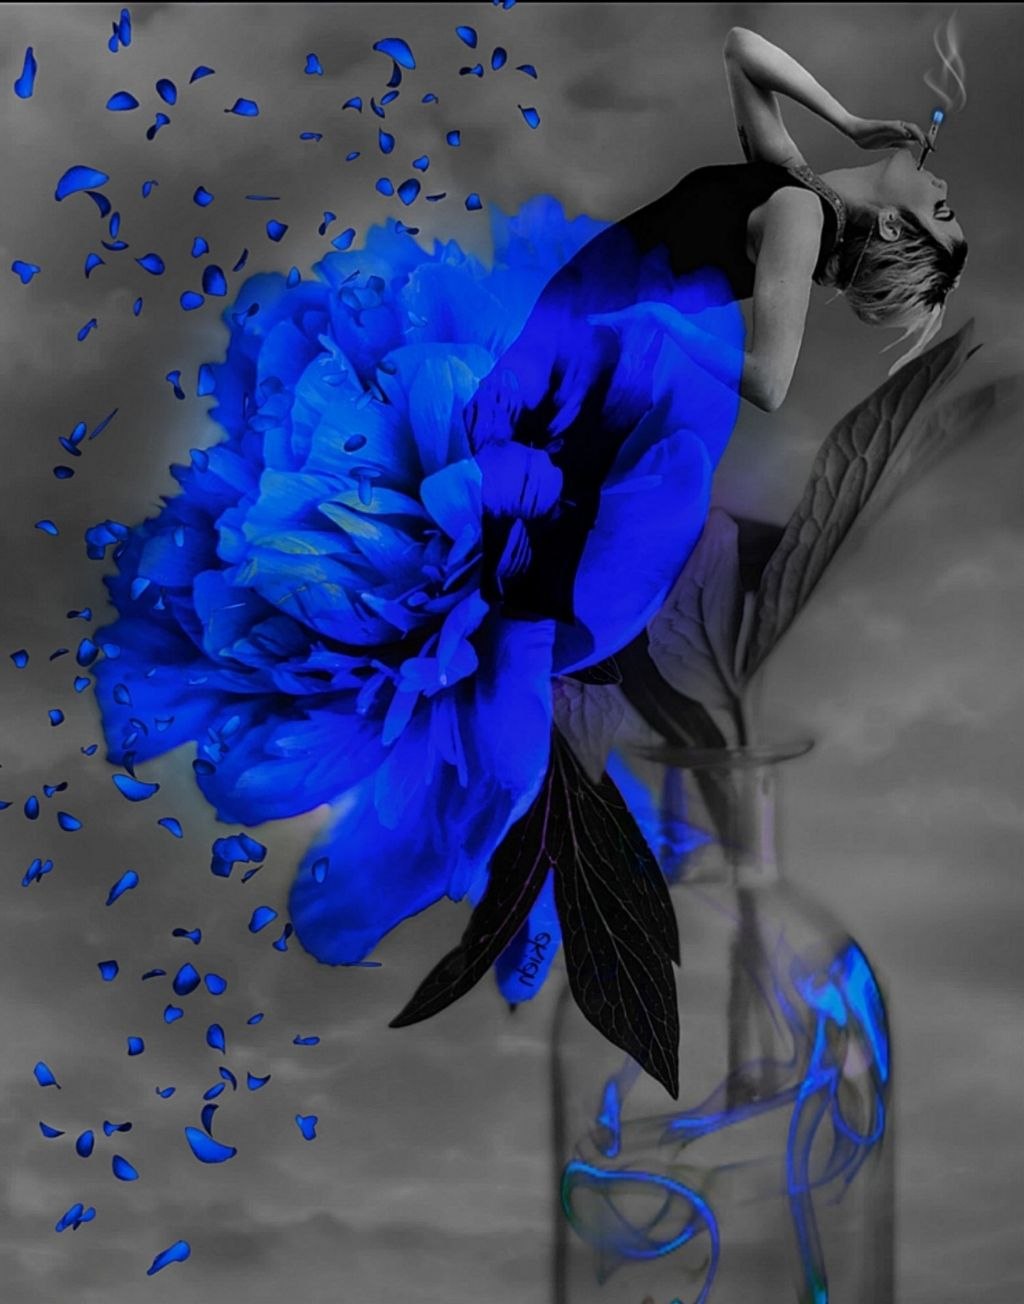 #freetoedit #blue#surreal #MyEdit#colorsplasheffect #blue#fantasy #illusion #interesting #art#artwork #myedit #madewithpicsart #picsarteffects #picsartremix #woman #smoke#rose#smoke#myart